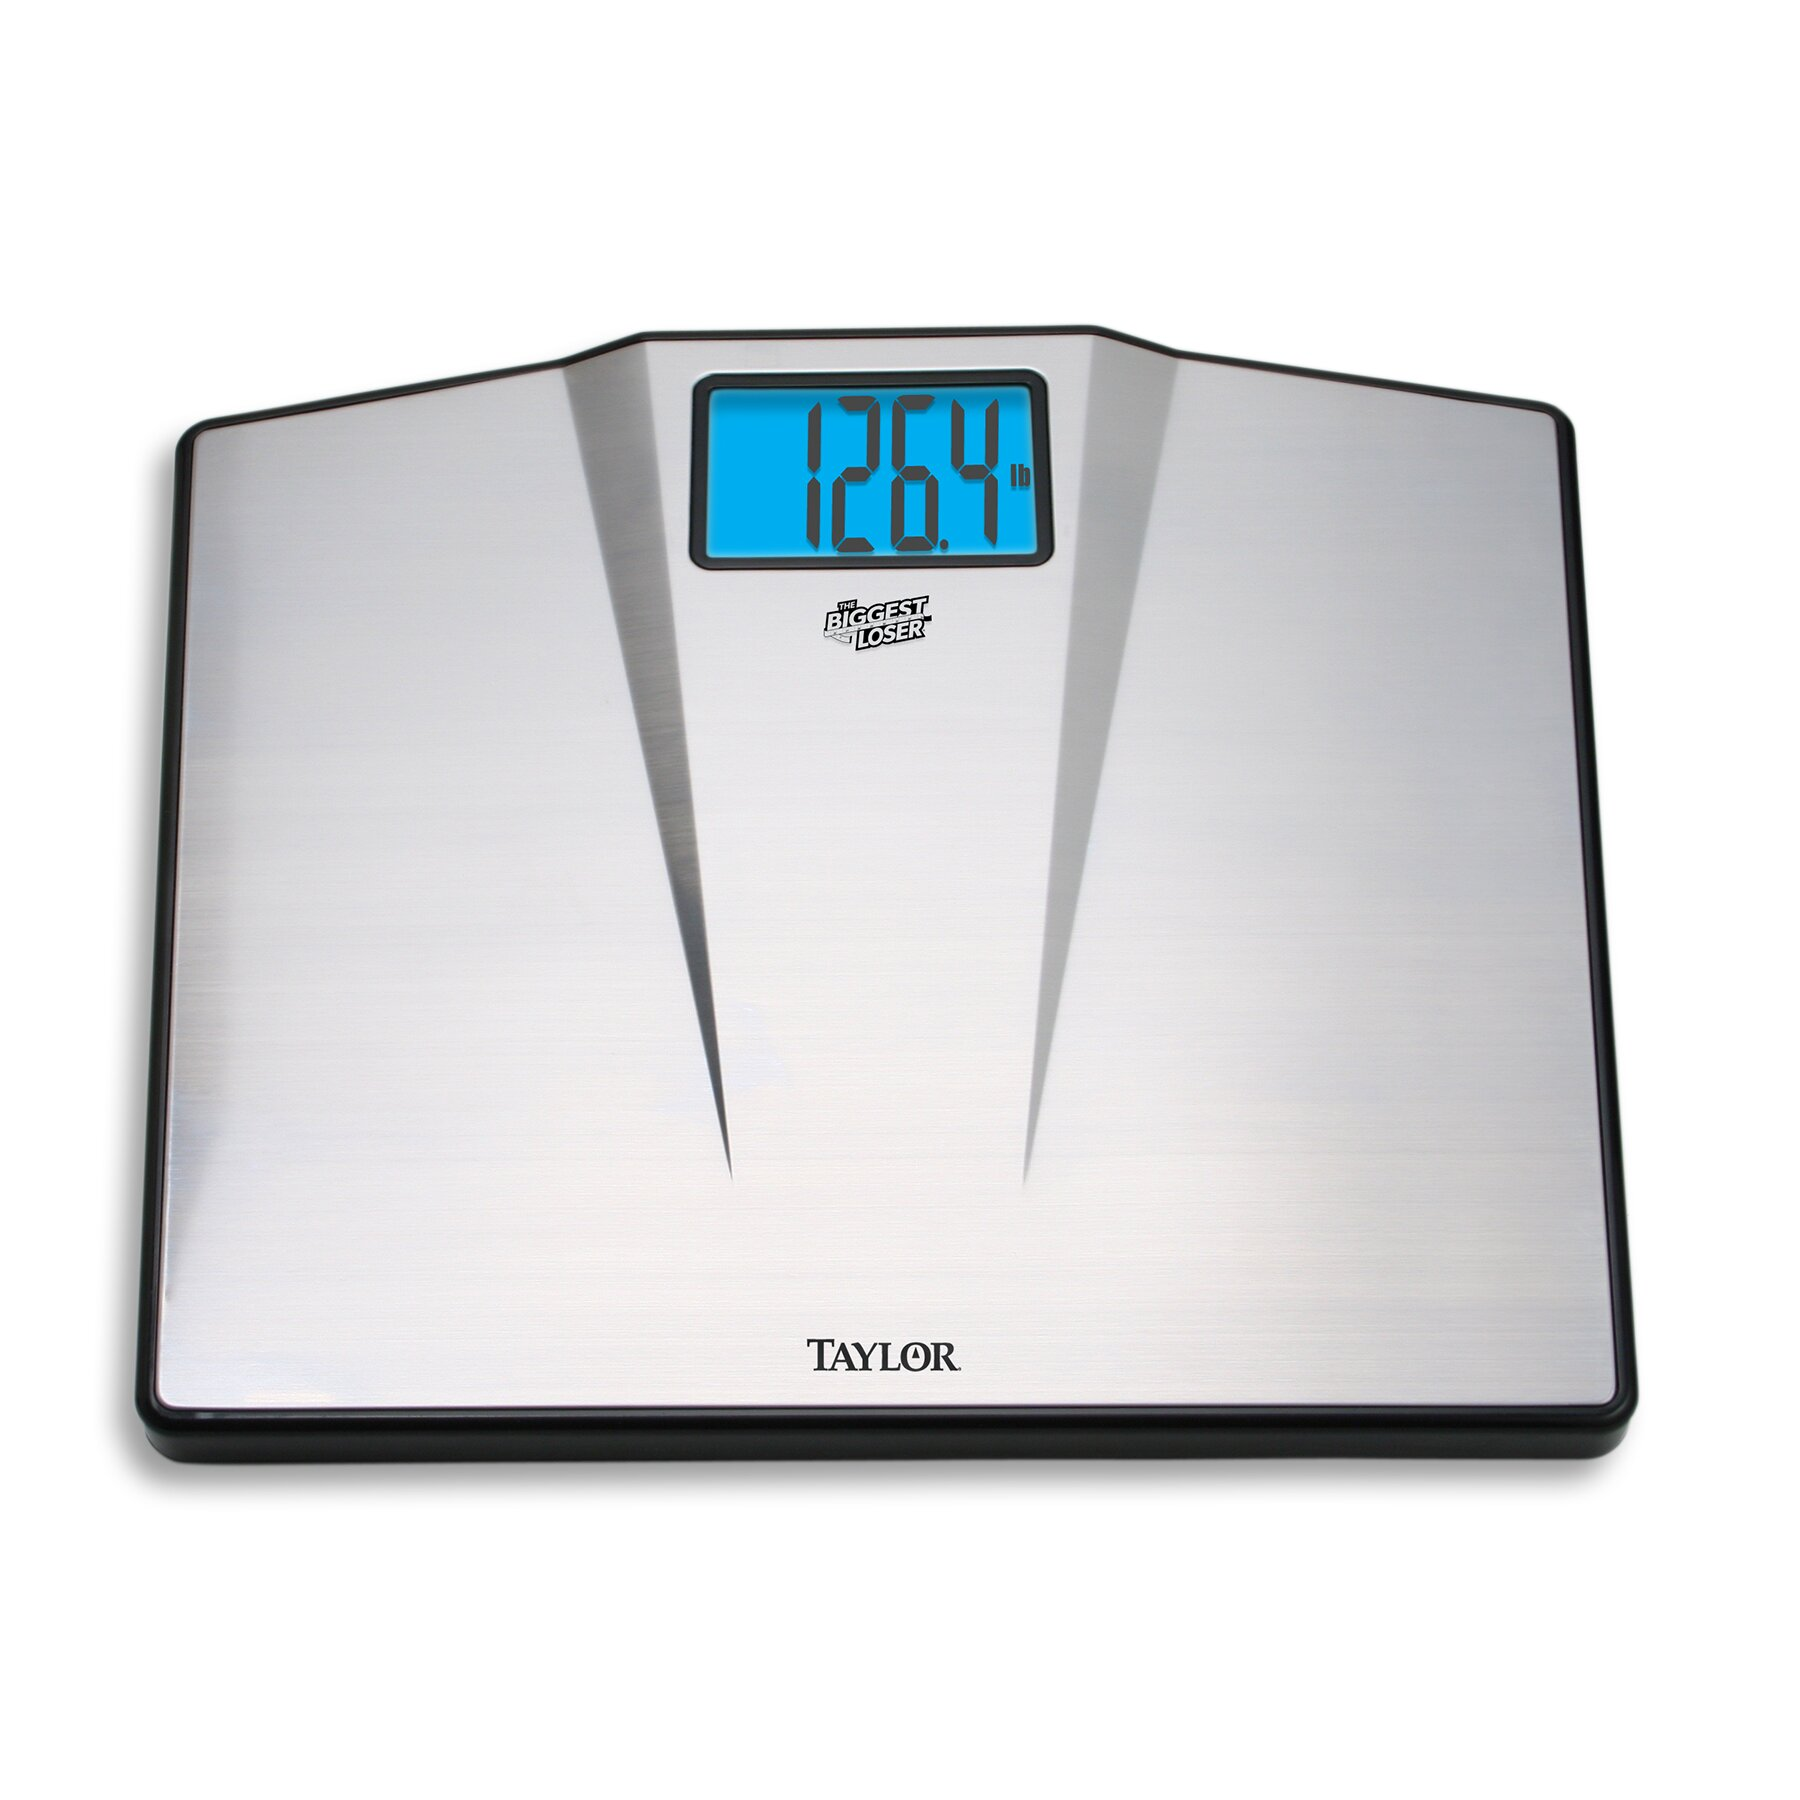 eatsmart precision digital bathroom scale  delonho, Bathroom decor